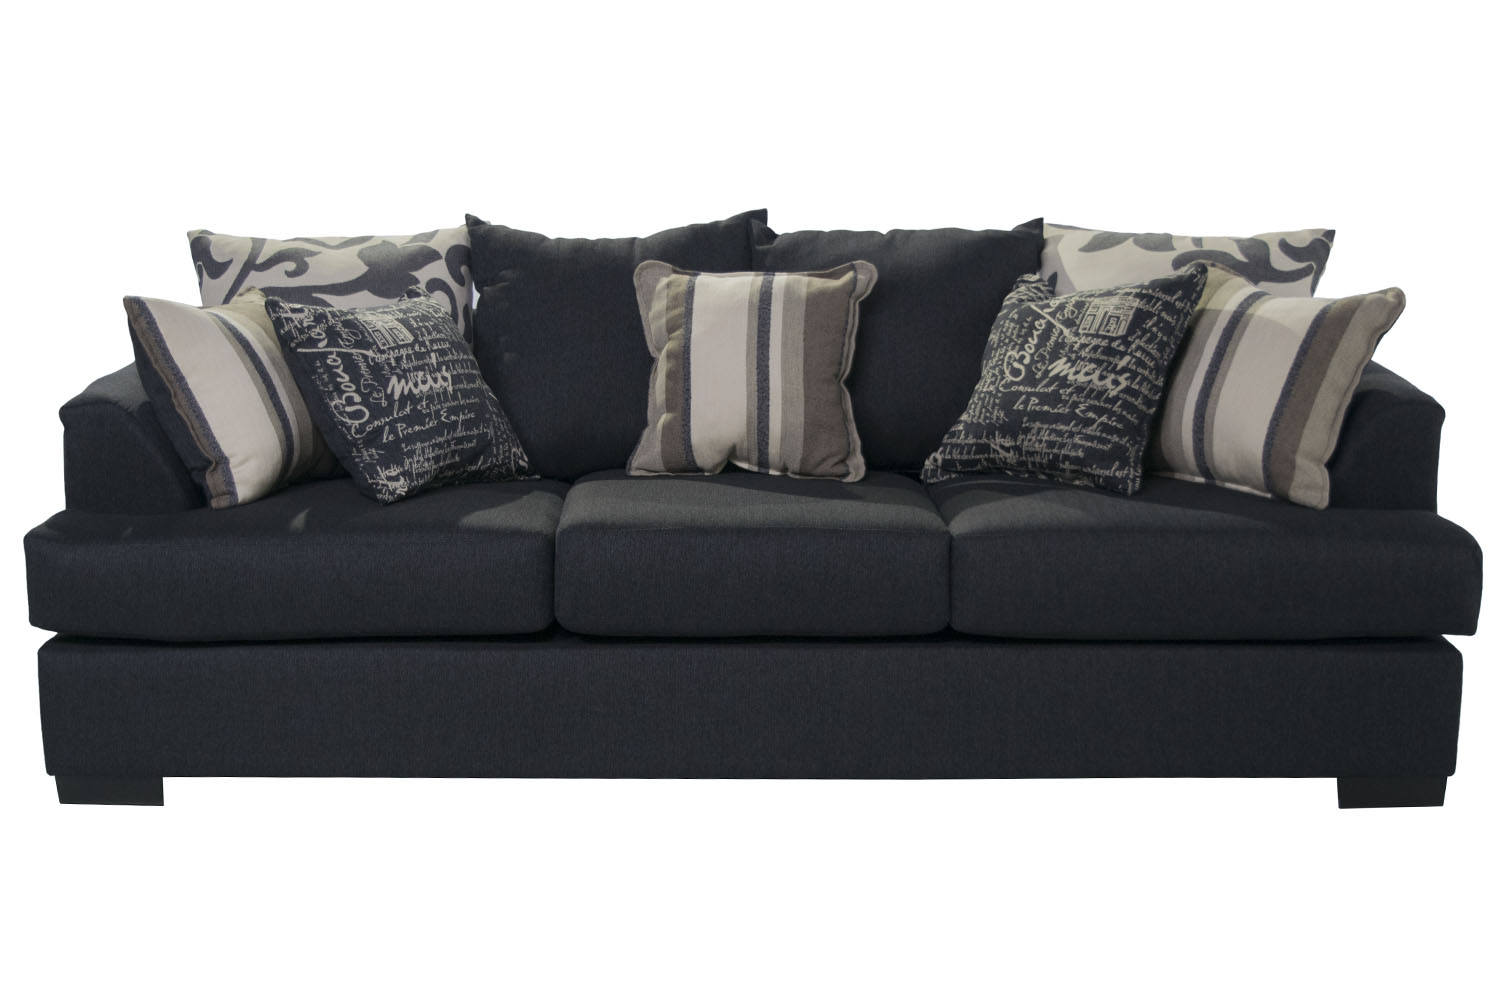 72 lancaster leather sofa white small west coast s home furniture store mor for less 266203892 passport